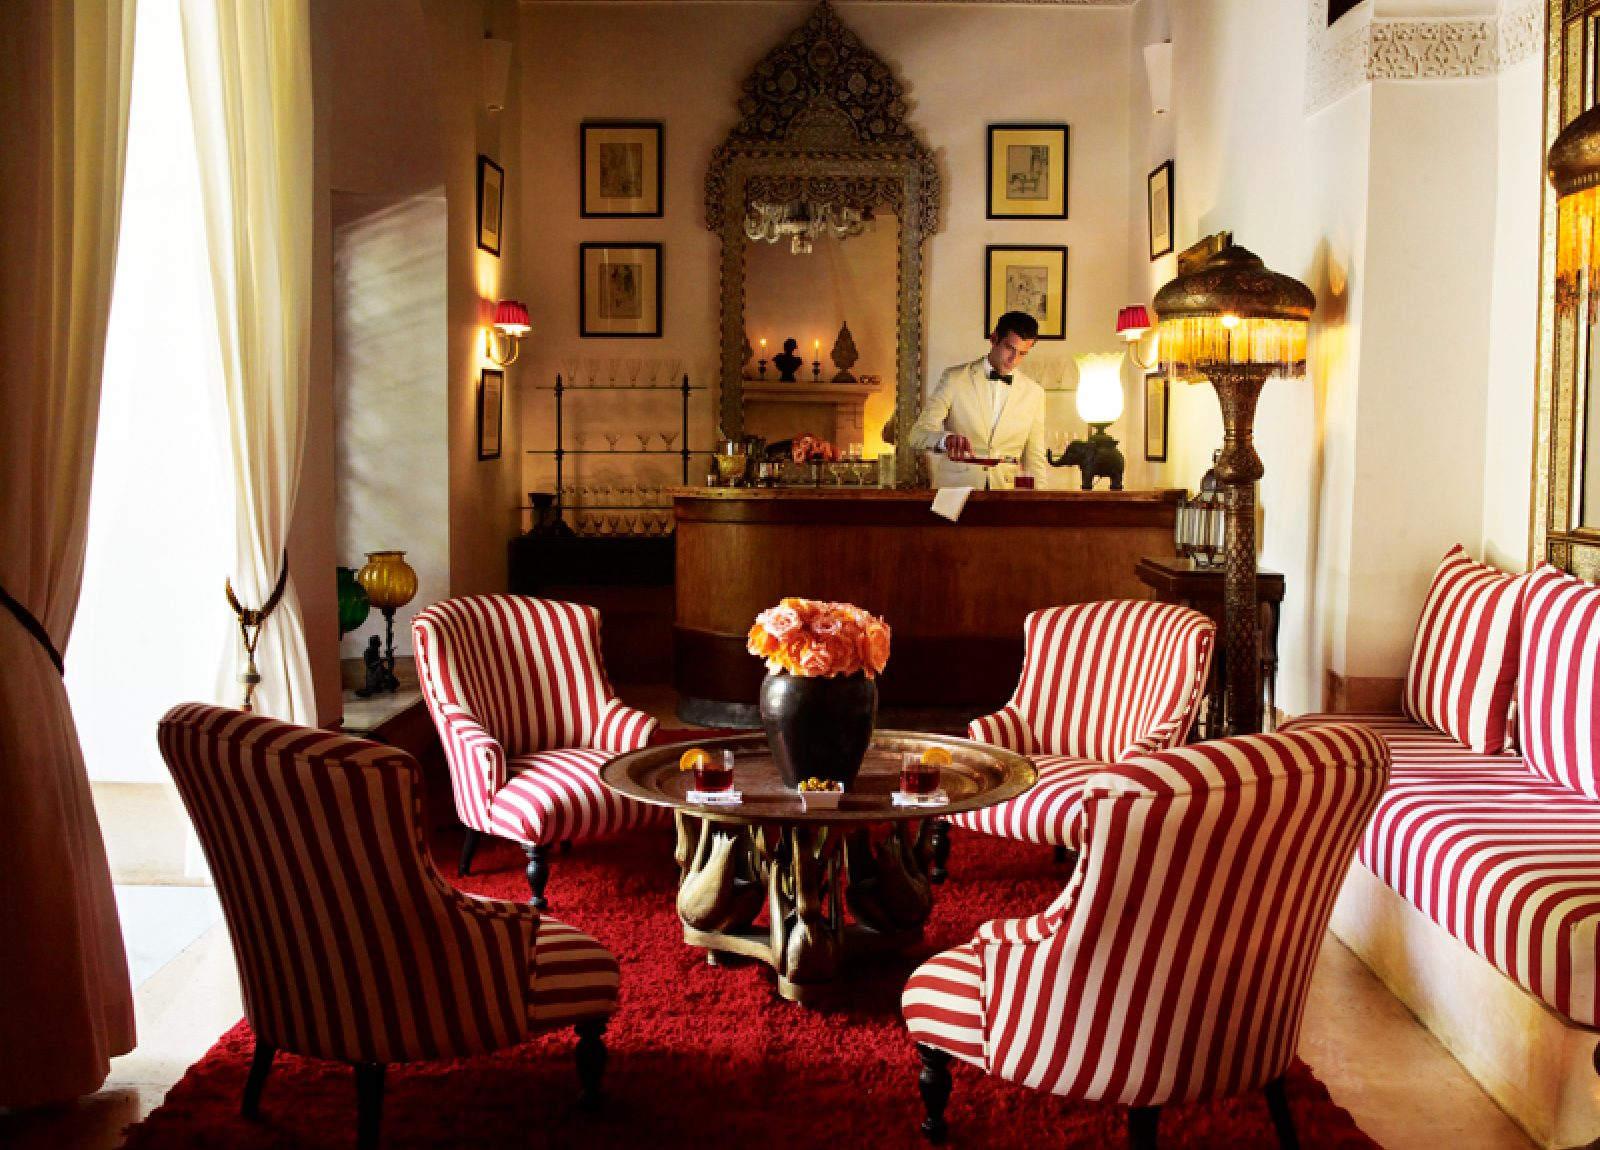 Enjoy 1930's glamour at L'Hôtel Marrakech 1